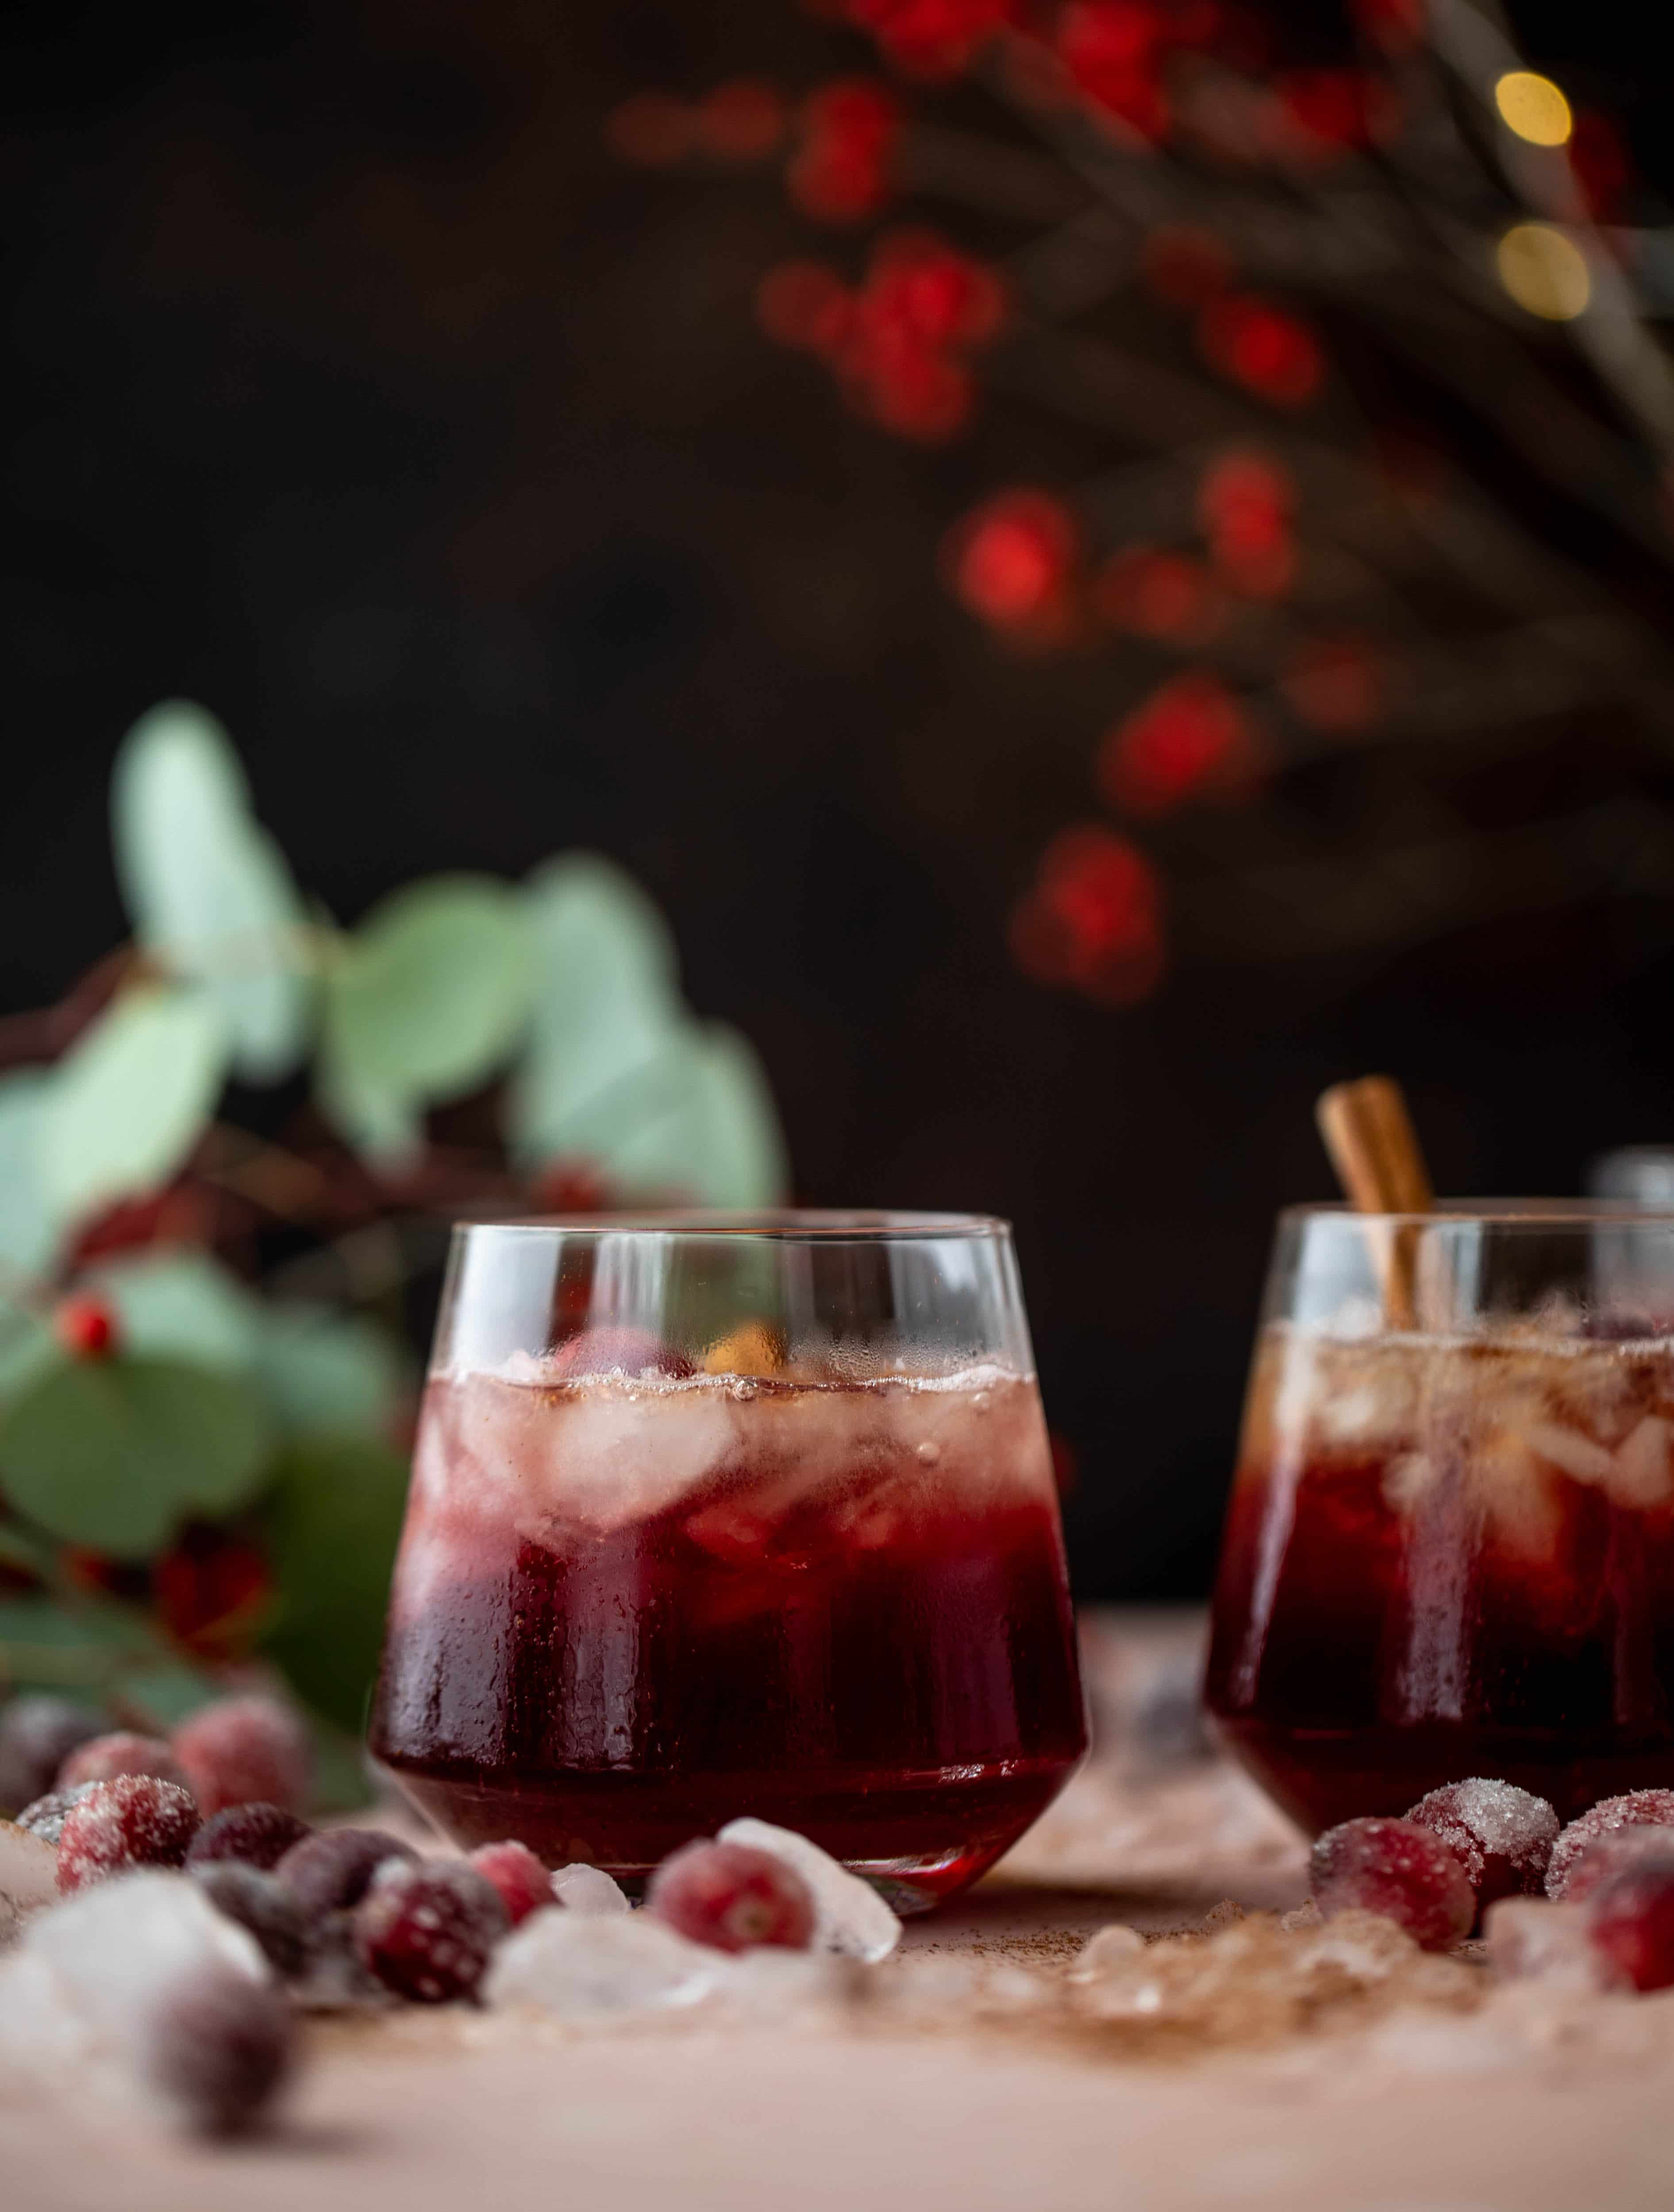 This cranberry cobbler smash is perfect for the holiday season! Bourbon, cinnamon simple syrup and cranberry juice - it's spiced and warming and wonderful.